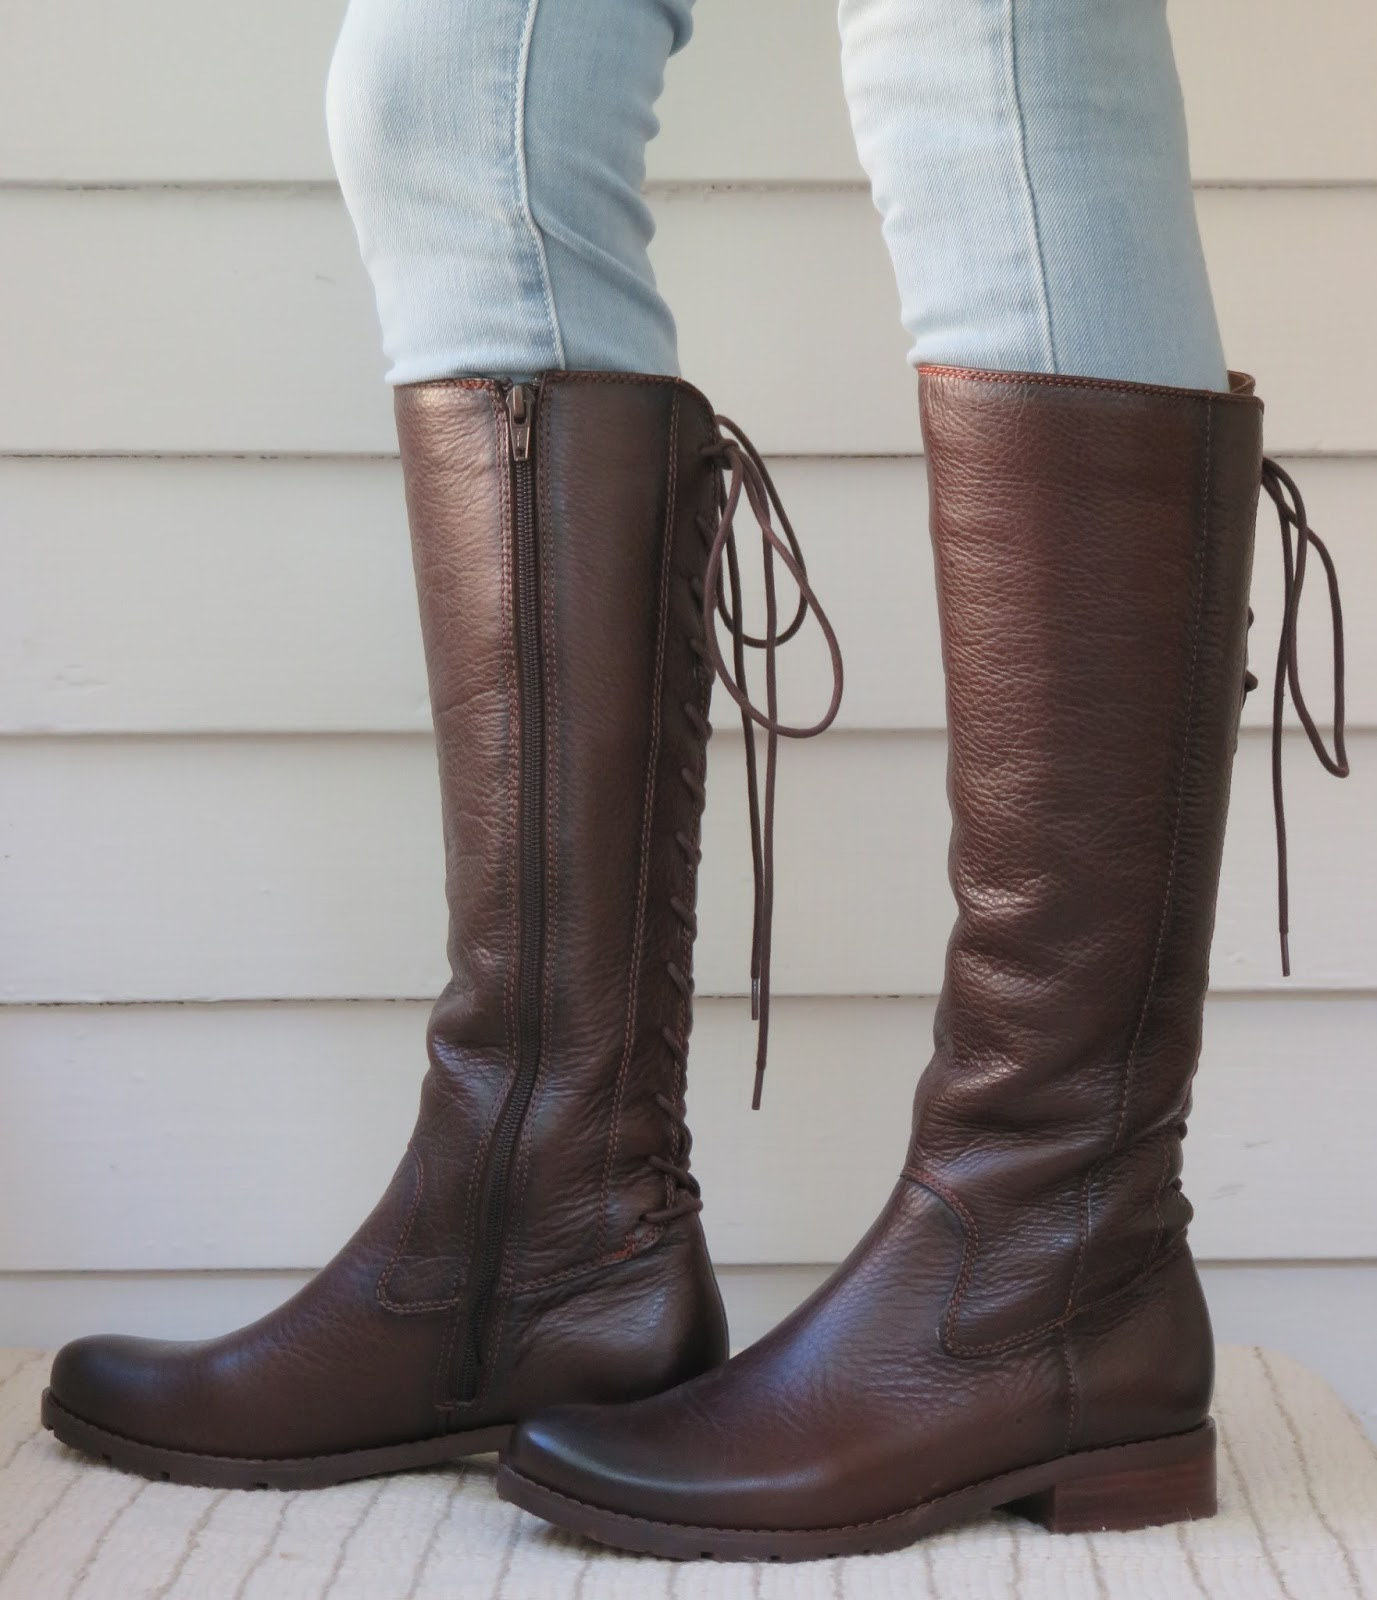 htm flat hero comforter boots women pairs a the new meagan boot for s comfortable side original members knee high over